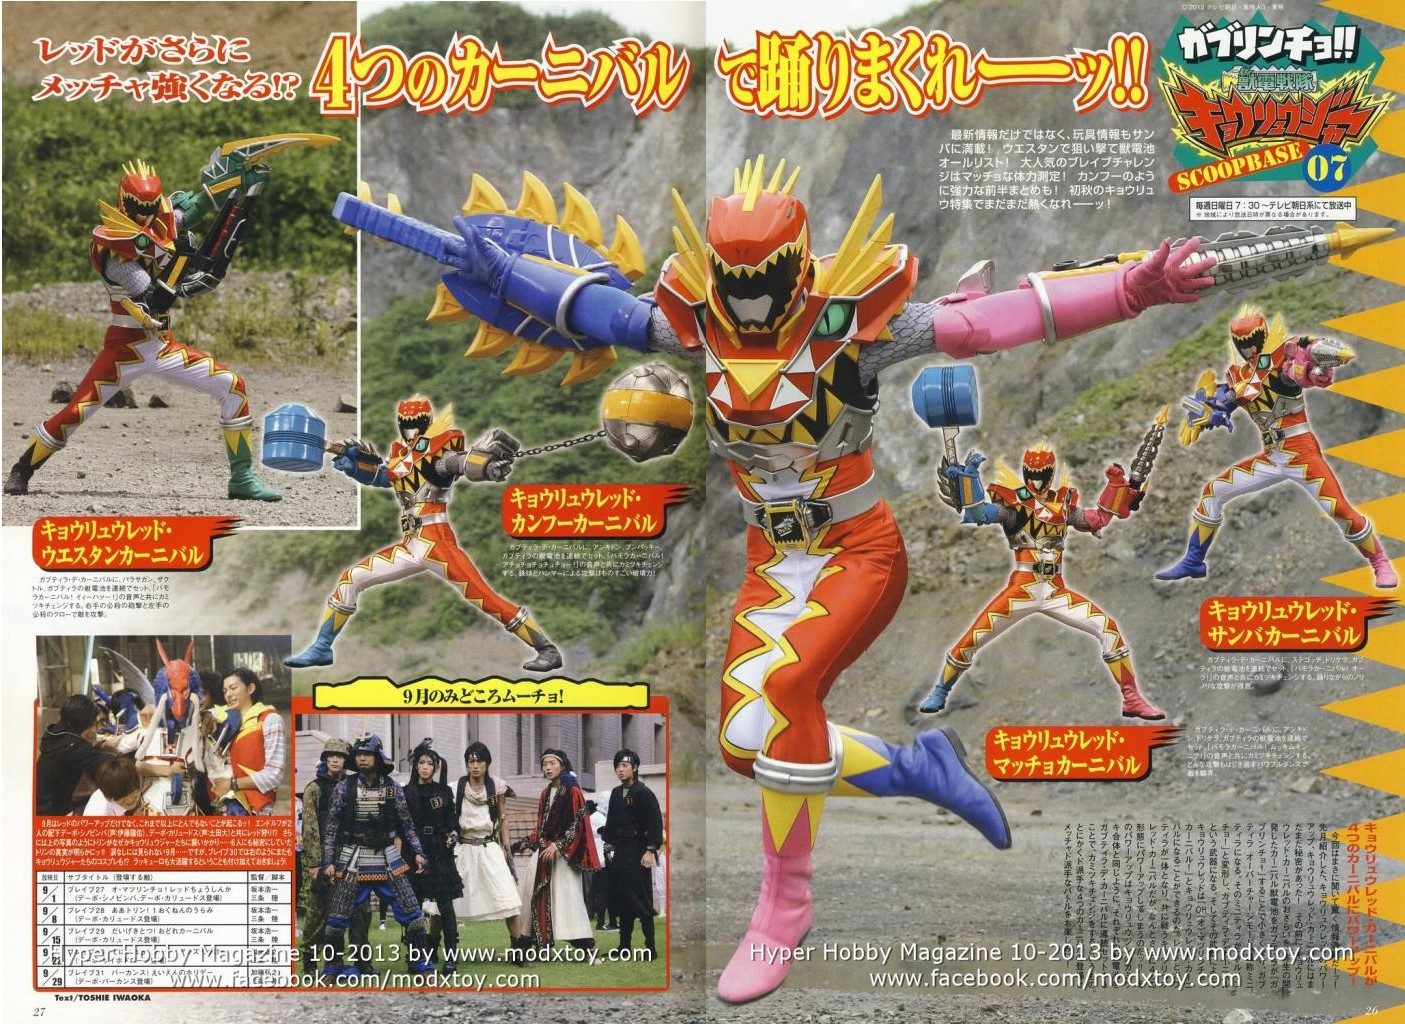 The power is on: hyper hobby: kyoryuger